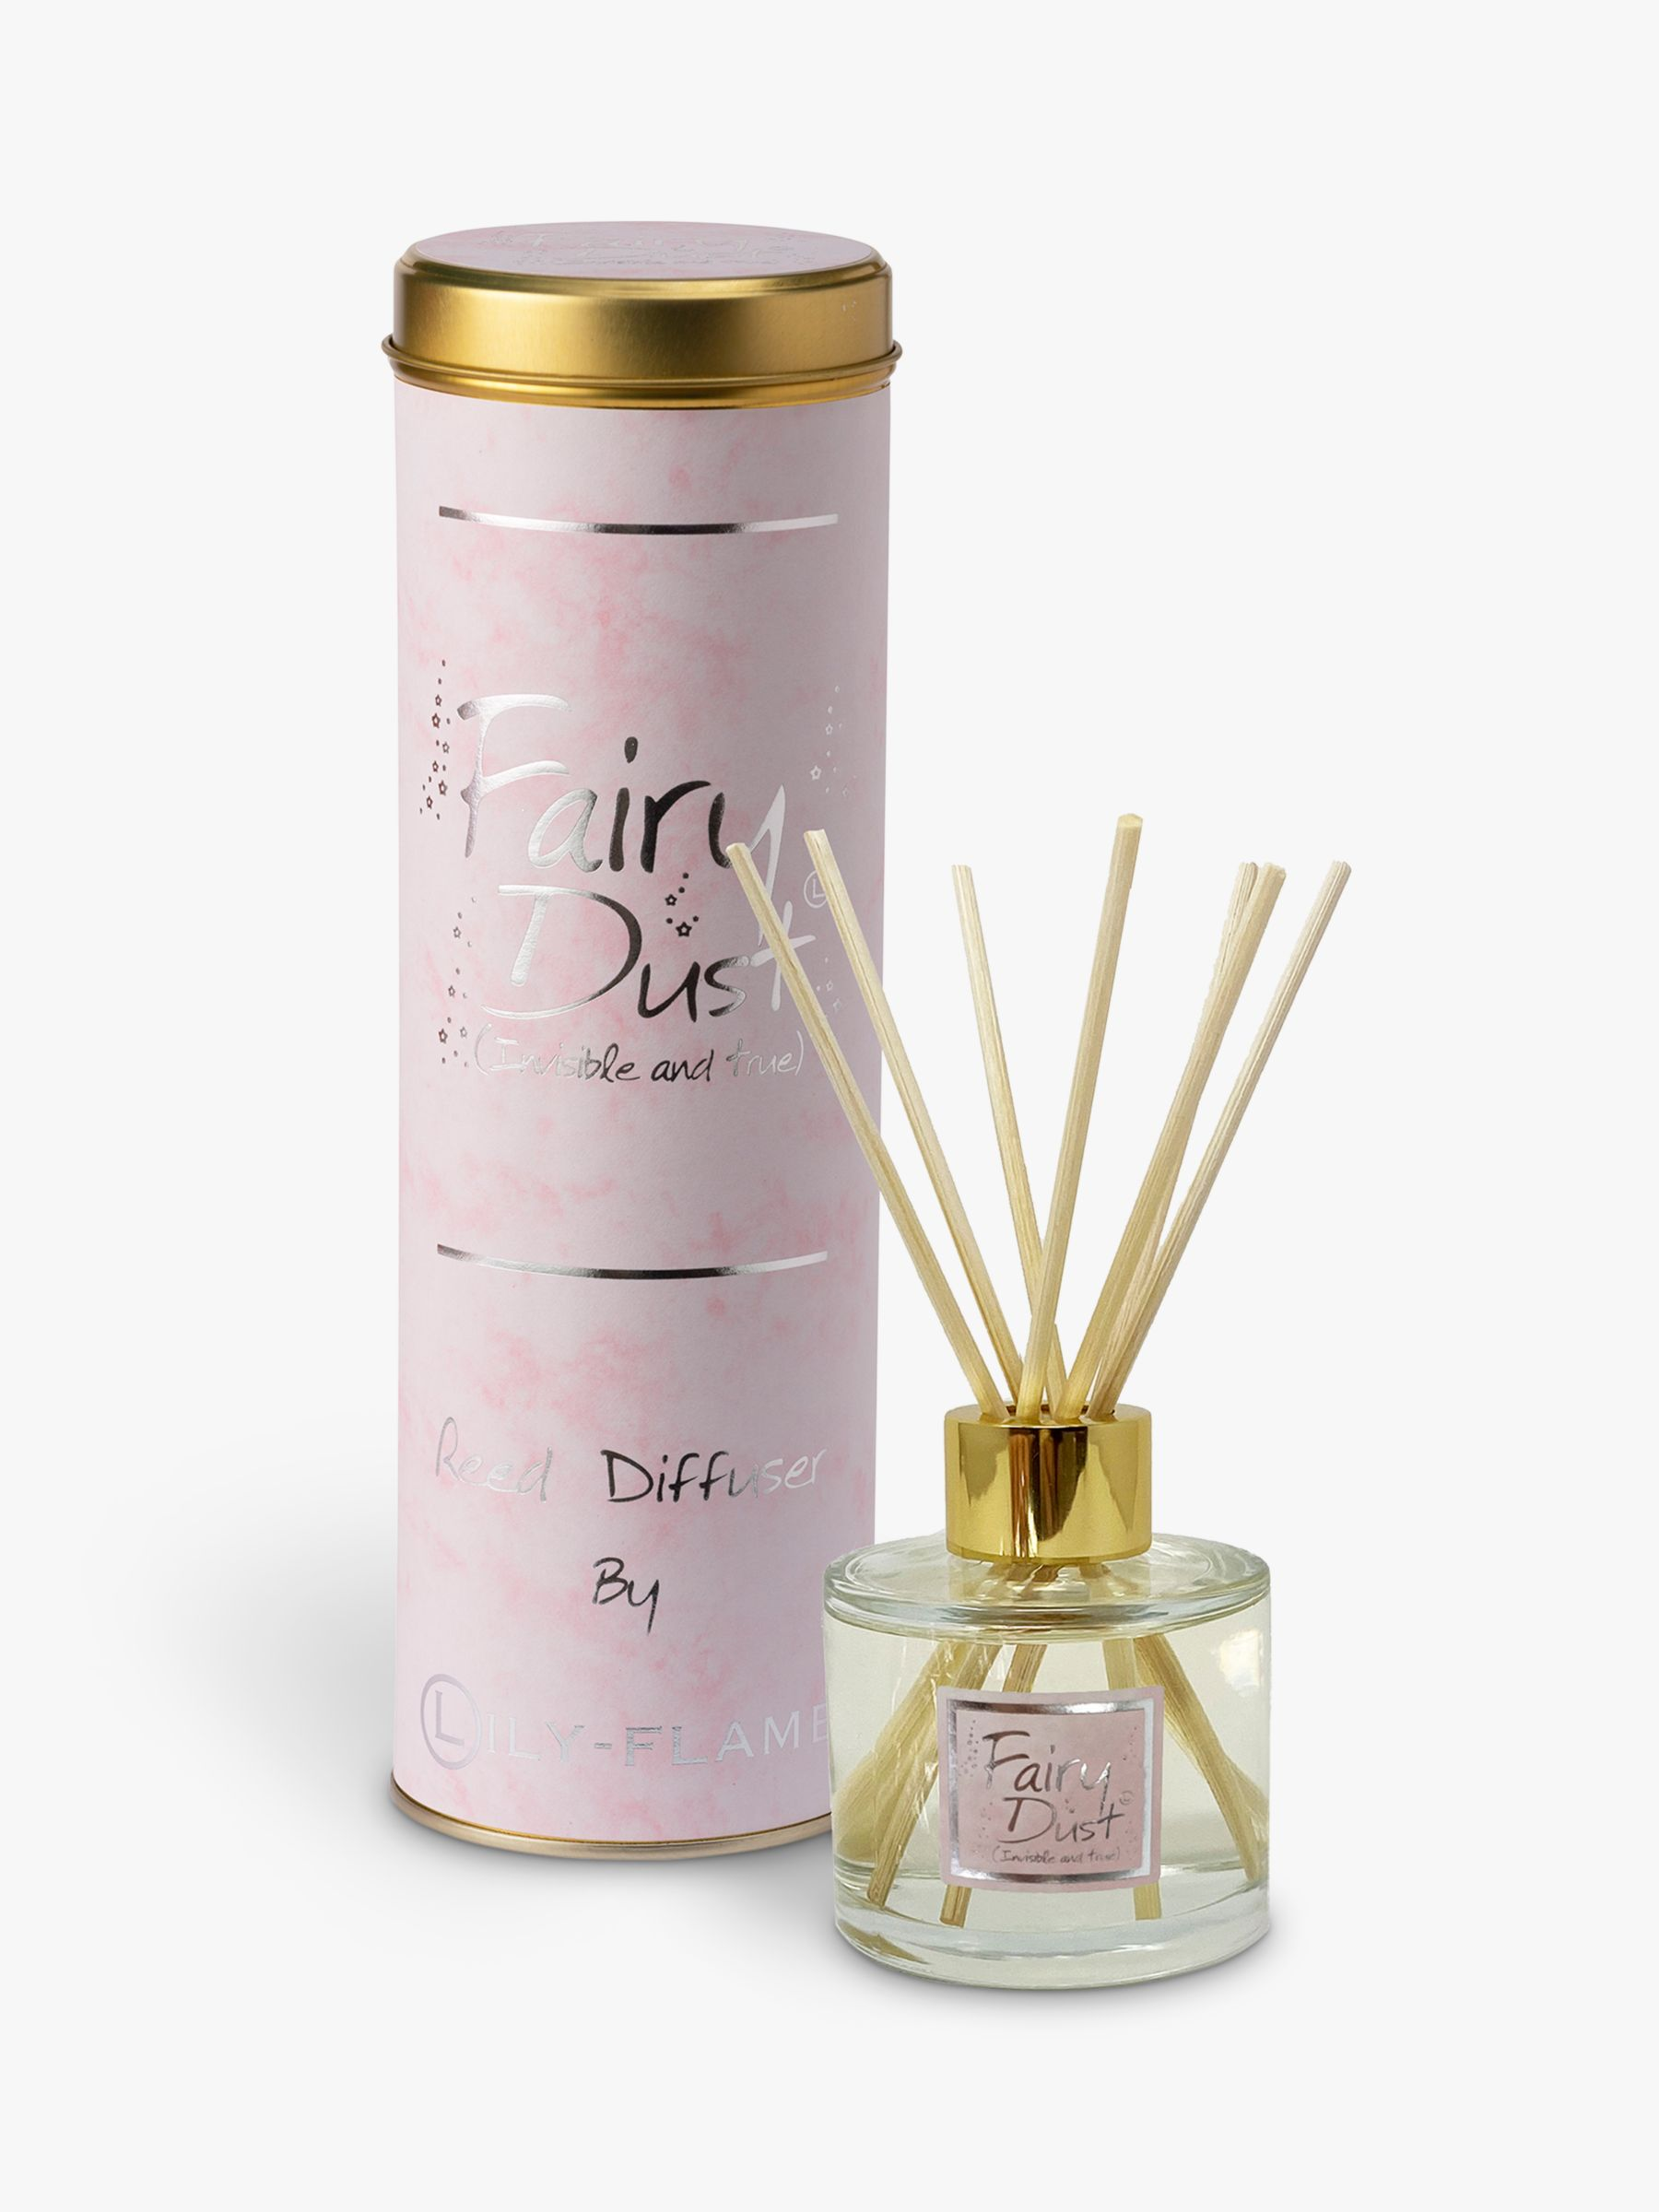 Lily-Flame Lily-flame Fairy Dust Reed Diffuser, 100ml